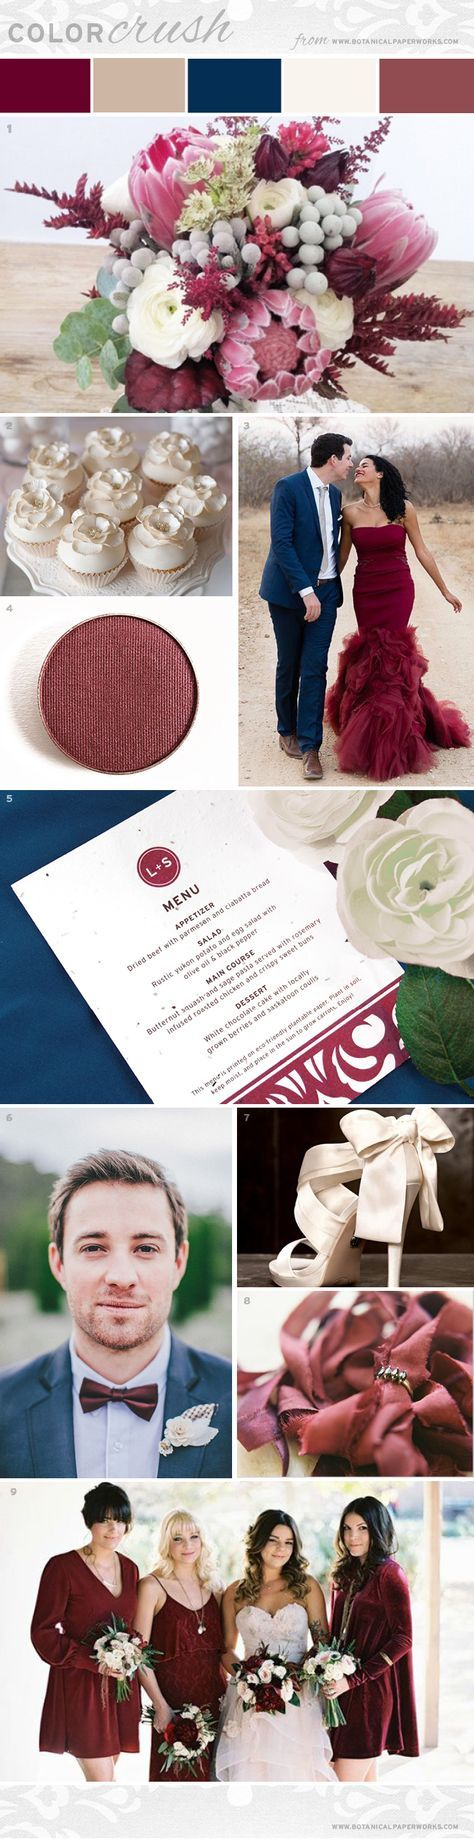 Maroon and cream wedding decor  inspiration board Color Crush  Pantone Color of the Year  Marsala